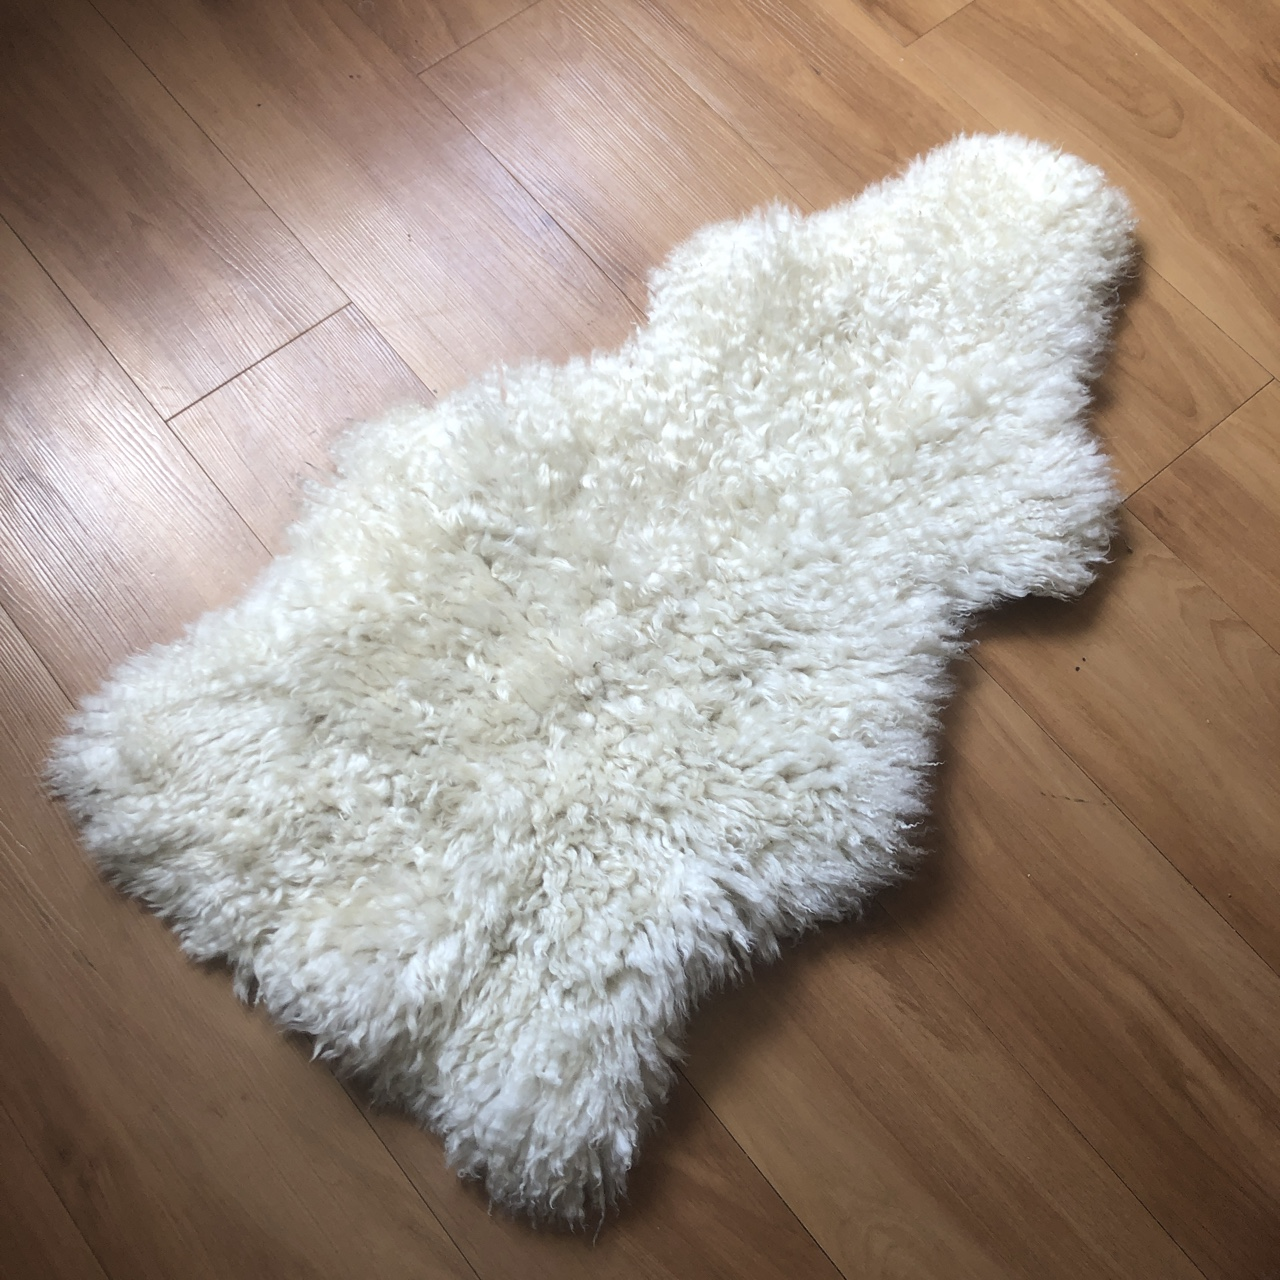 Ikea White Fluffy Rug Used But Still Lots Of Use In Depop